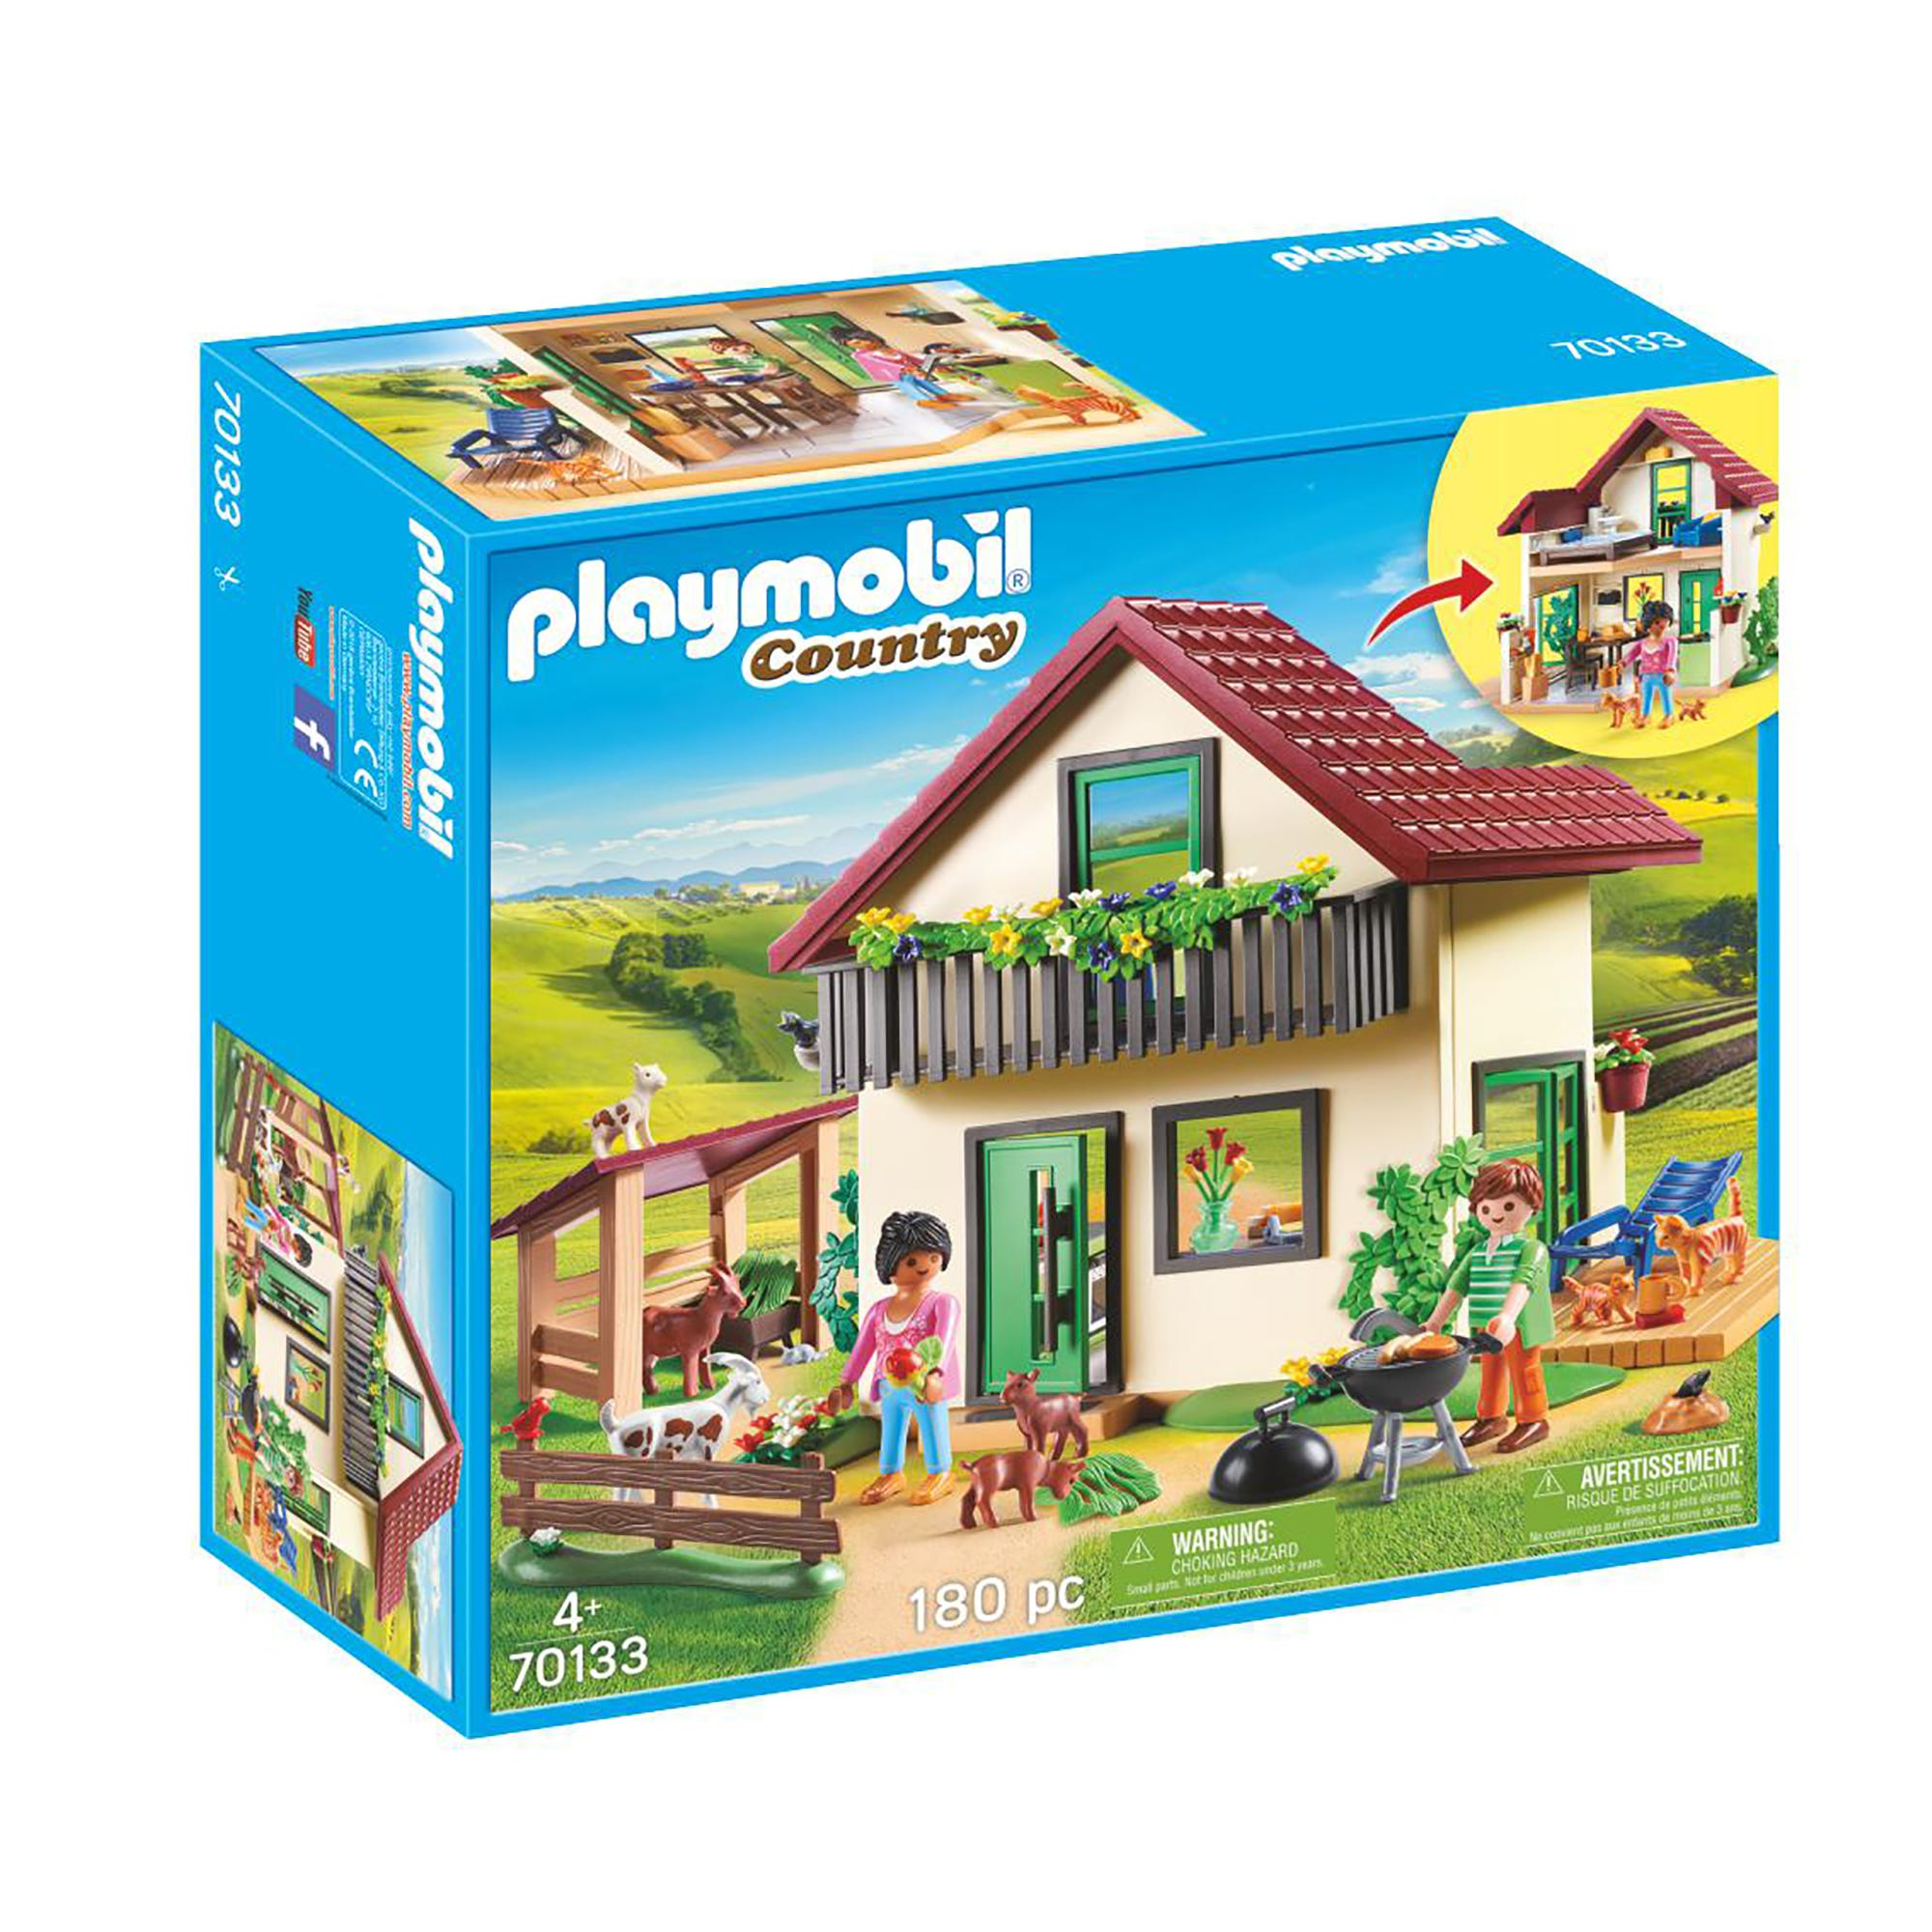 Playmobil 70133 Country Modern House